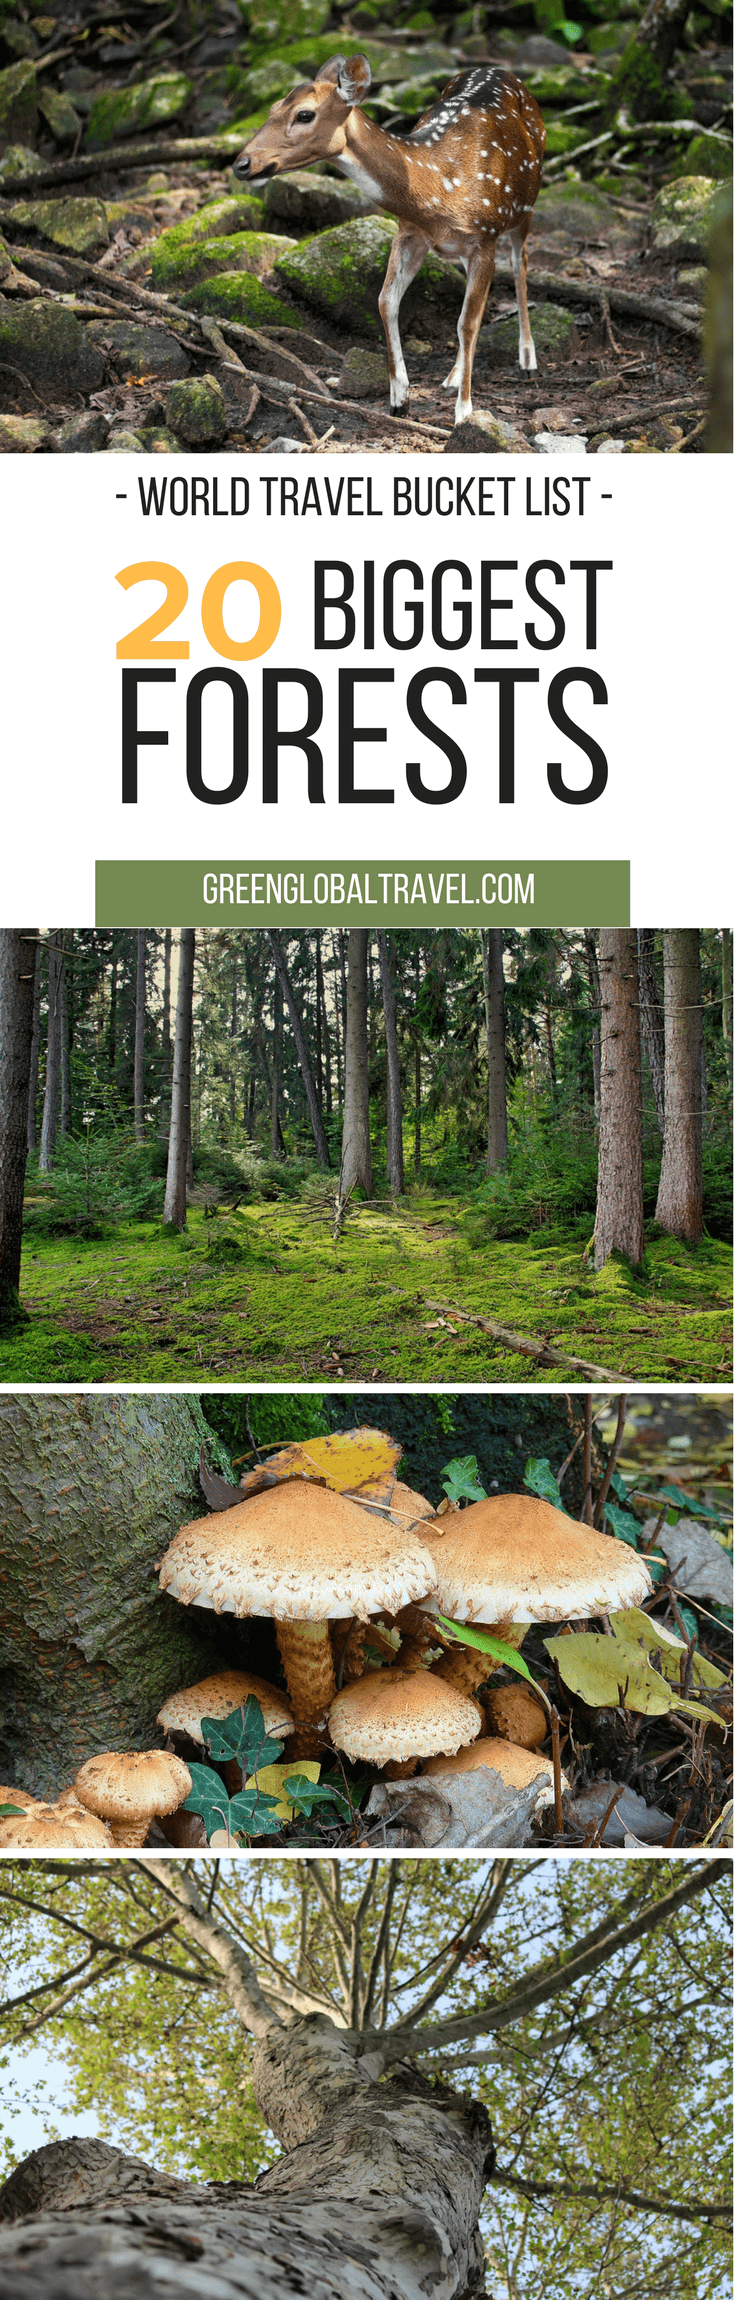 The 20 Biggest Forests (For Your World Travel Bucket List) including Forests in America, African Forests, Asian Forests, European Forests | American Forests via @greenglobaltrvl